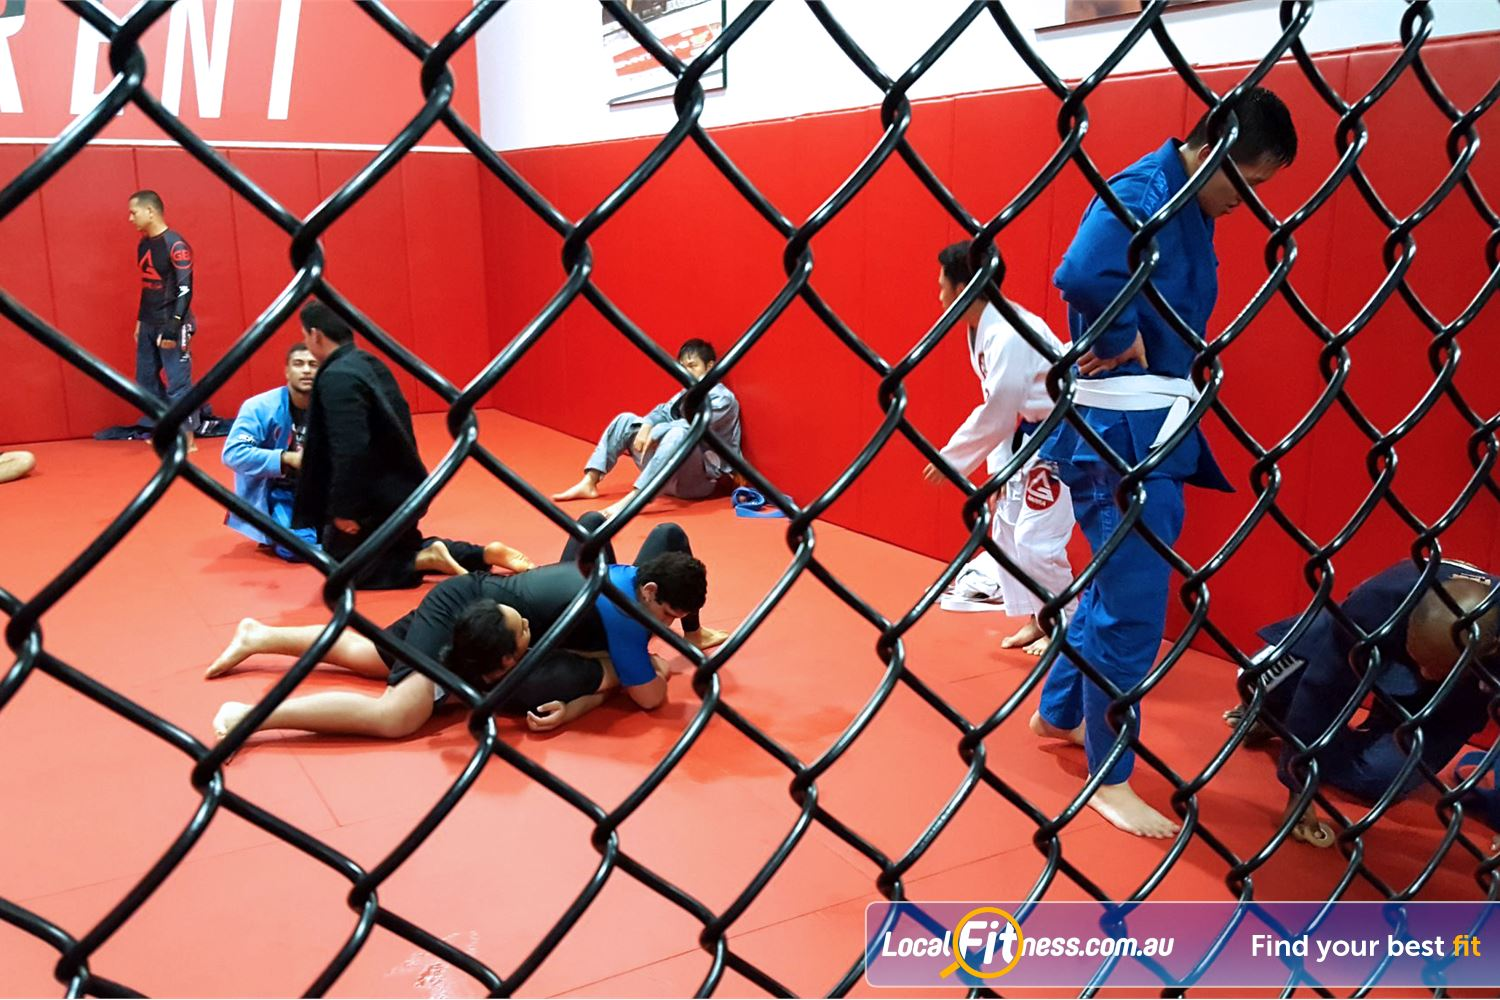 UFC Gym Blacktown Learn from some of the best combat trainers in Blacktown.